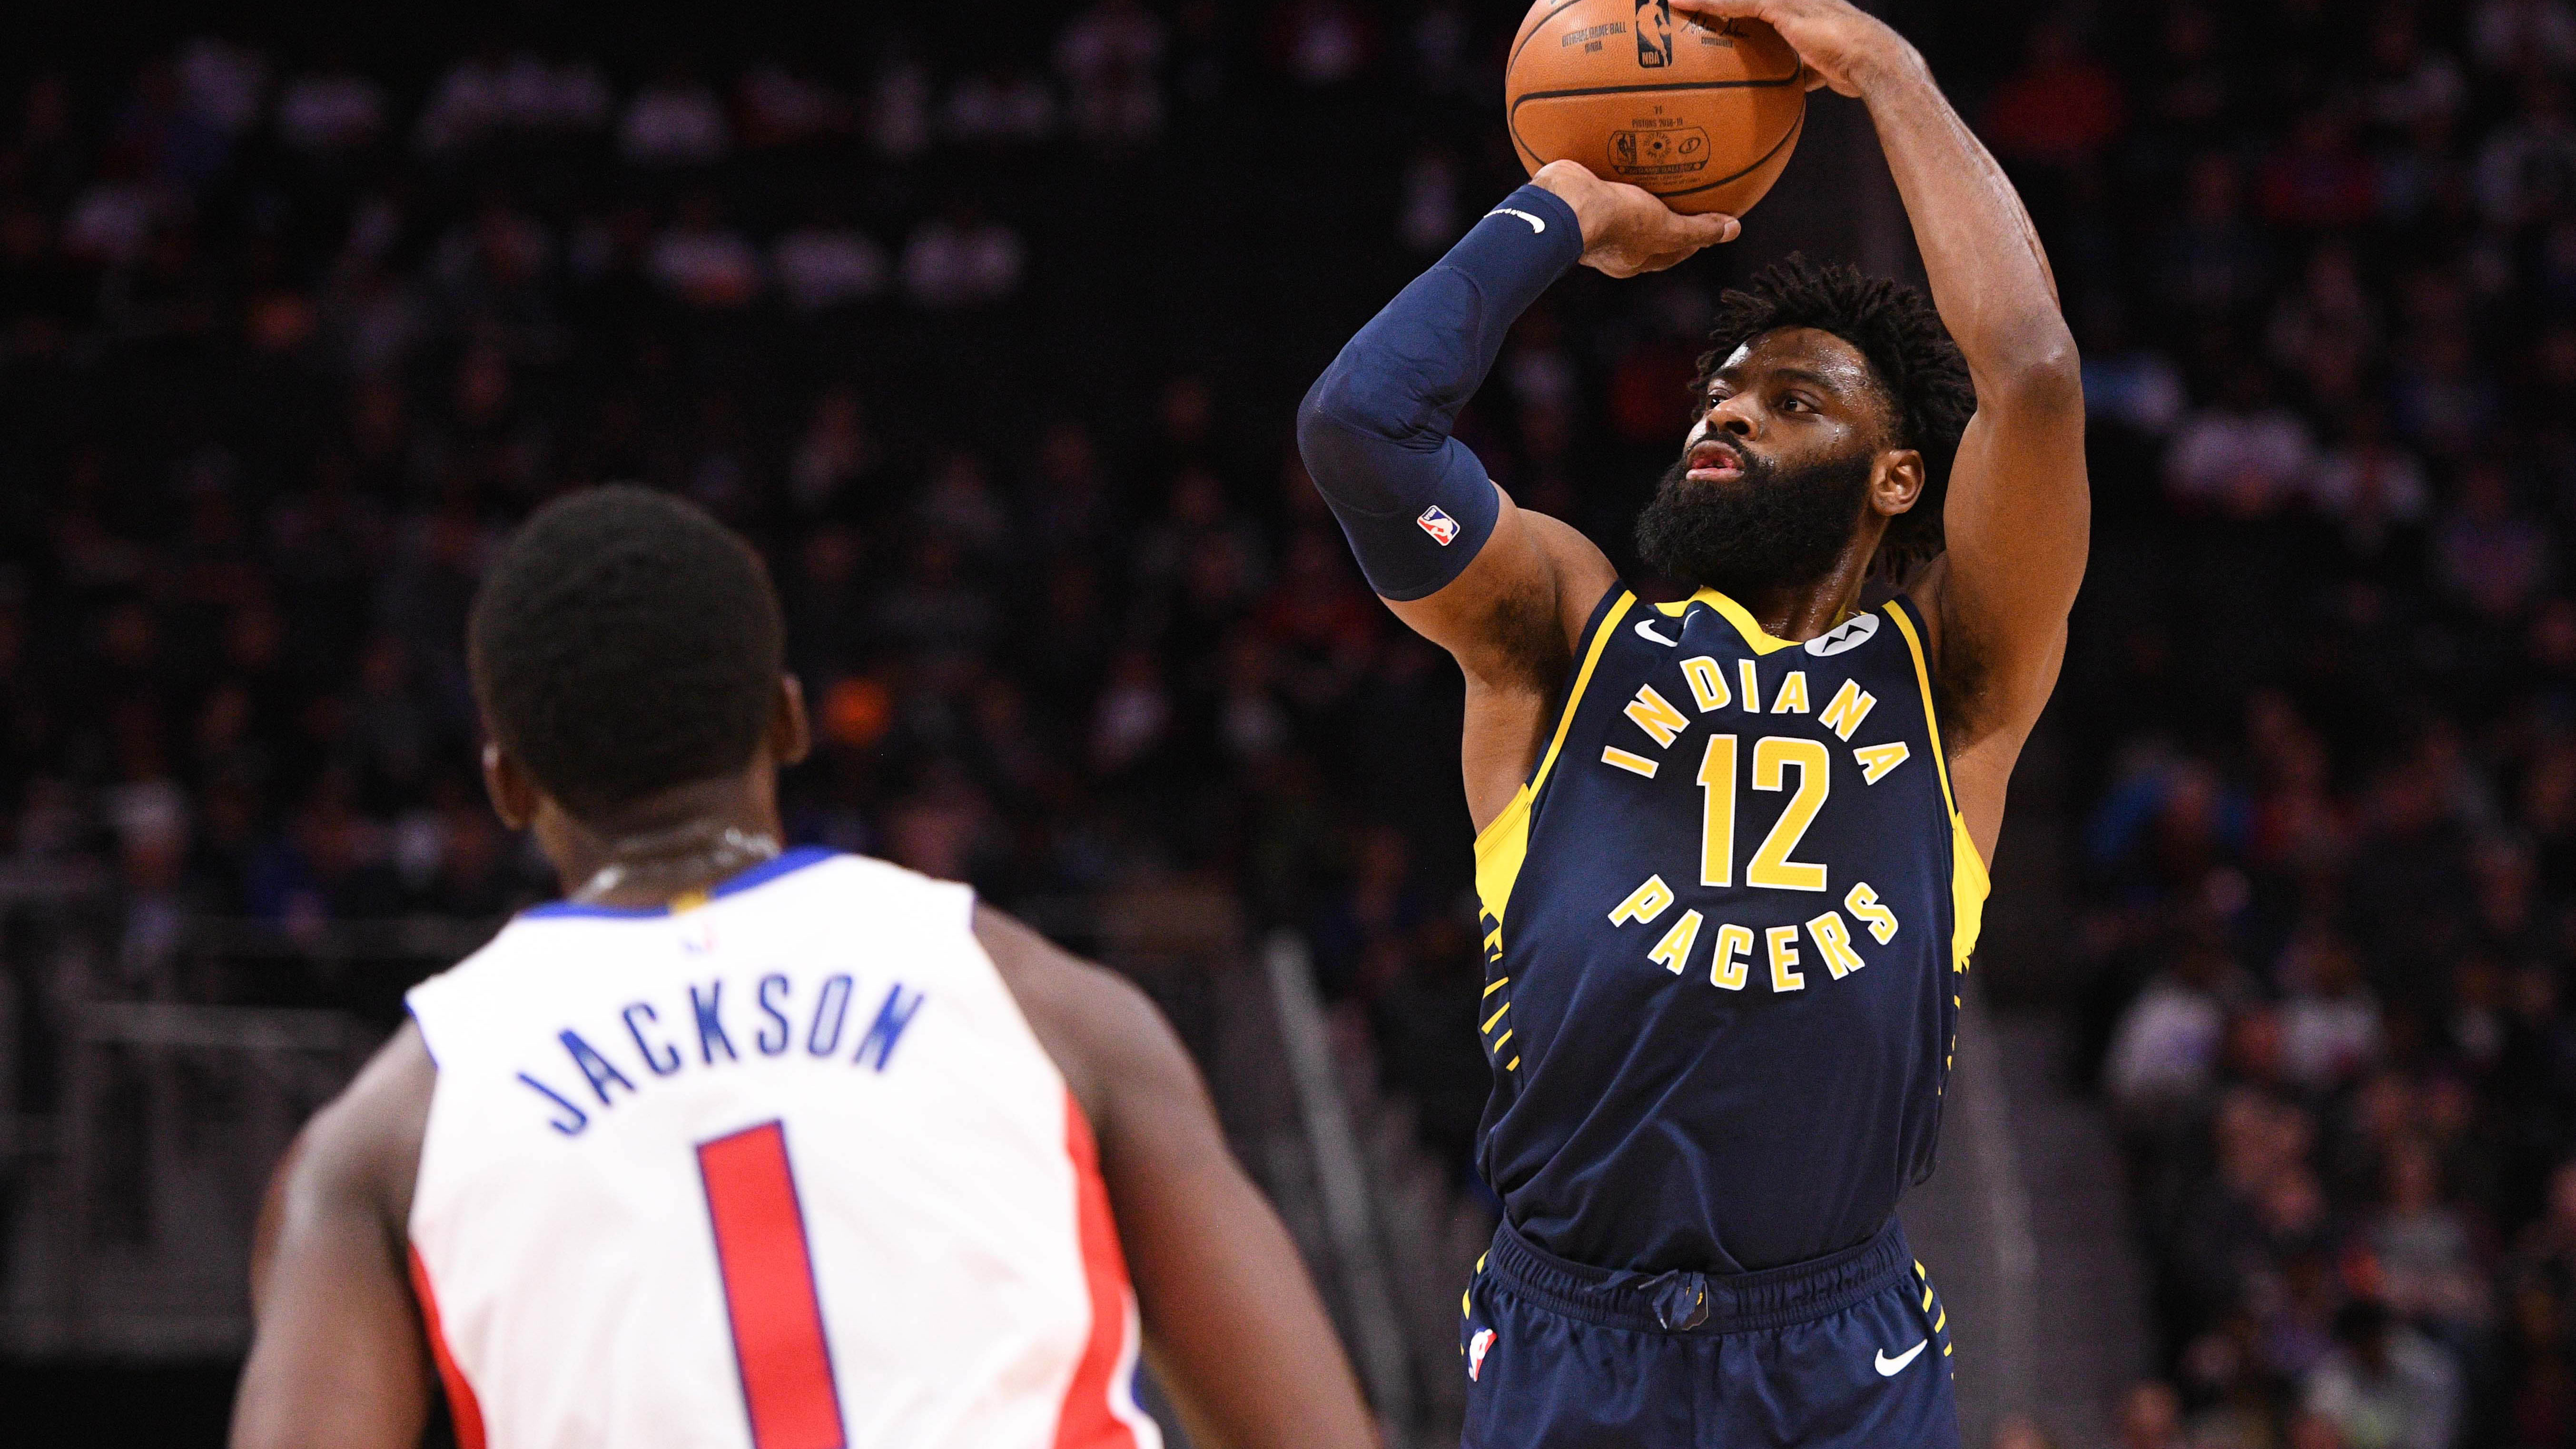 Young scores 21 as Pacers win back-to-back games over Pistons